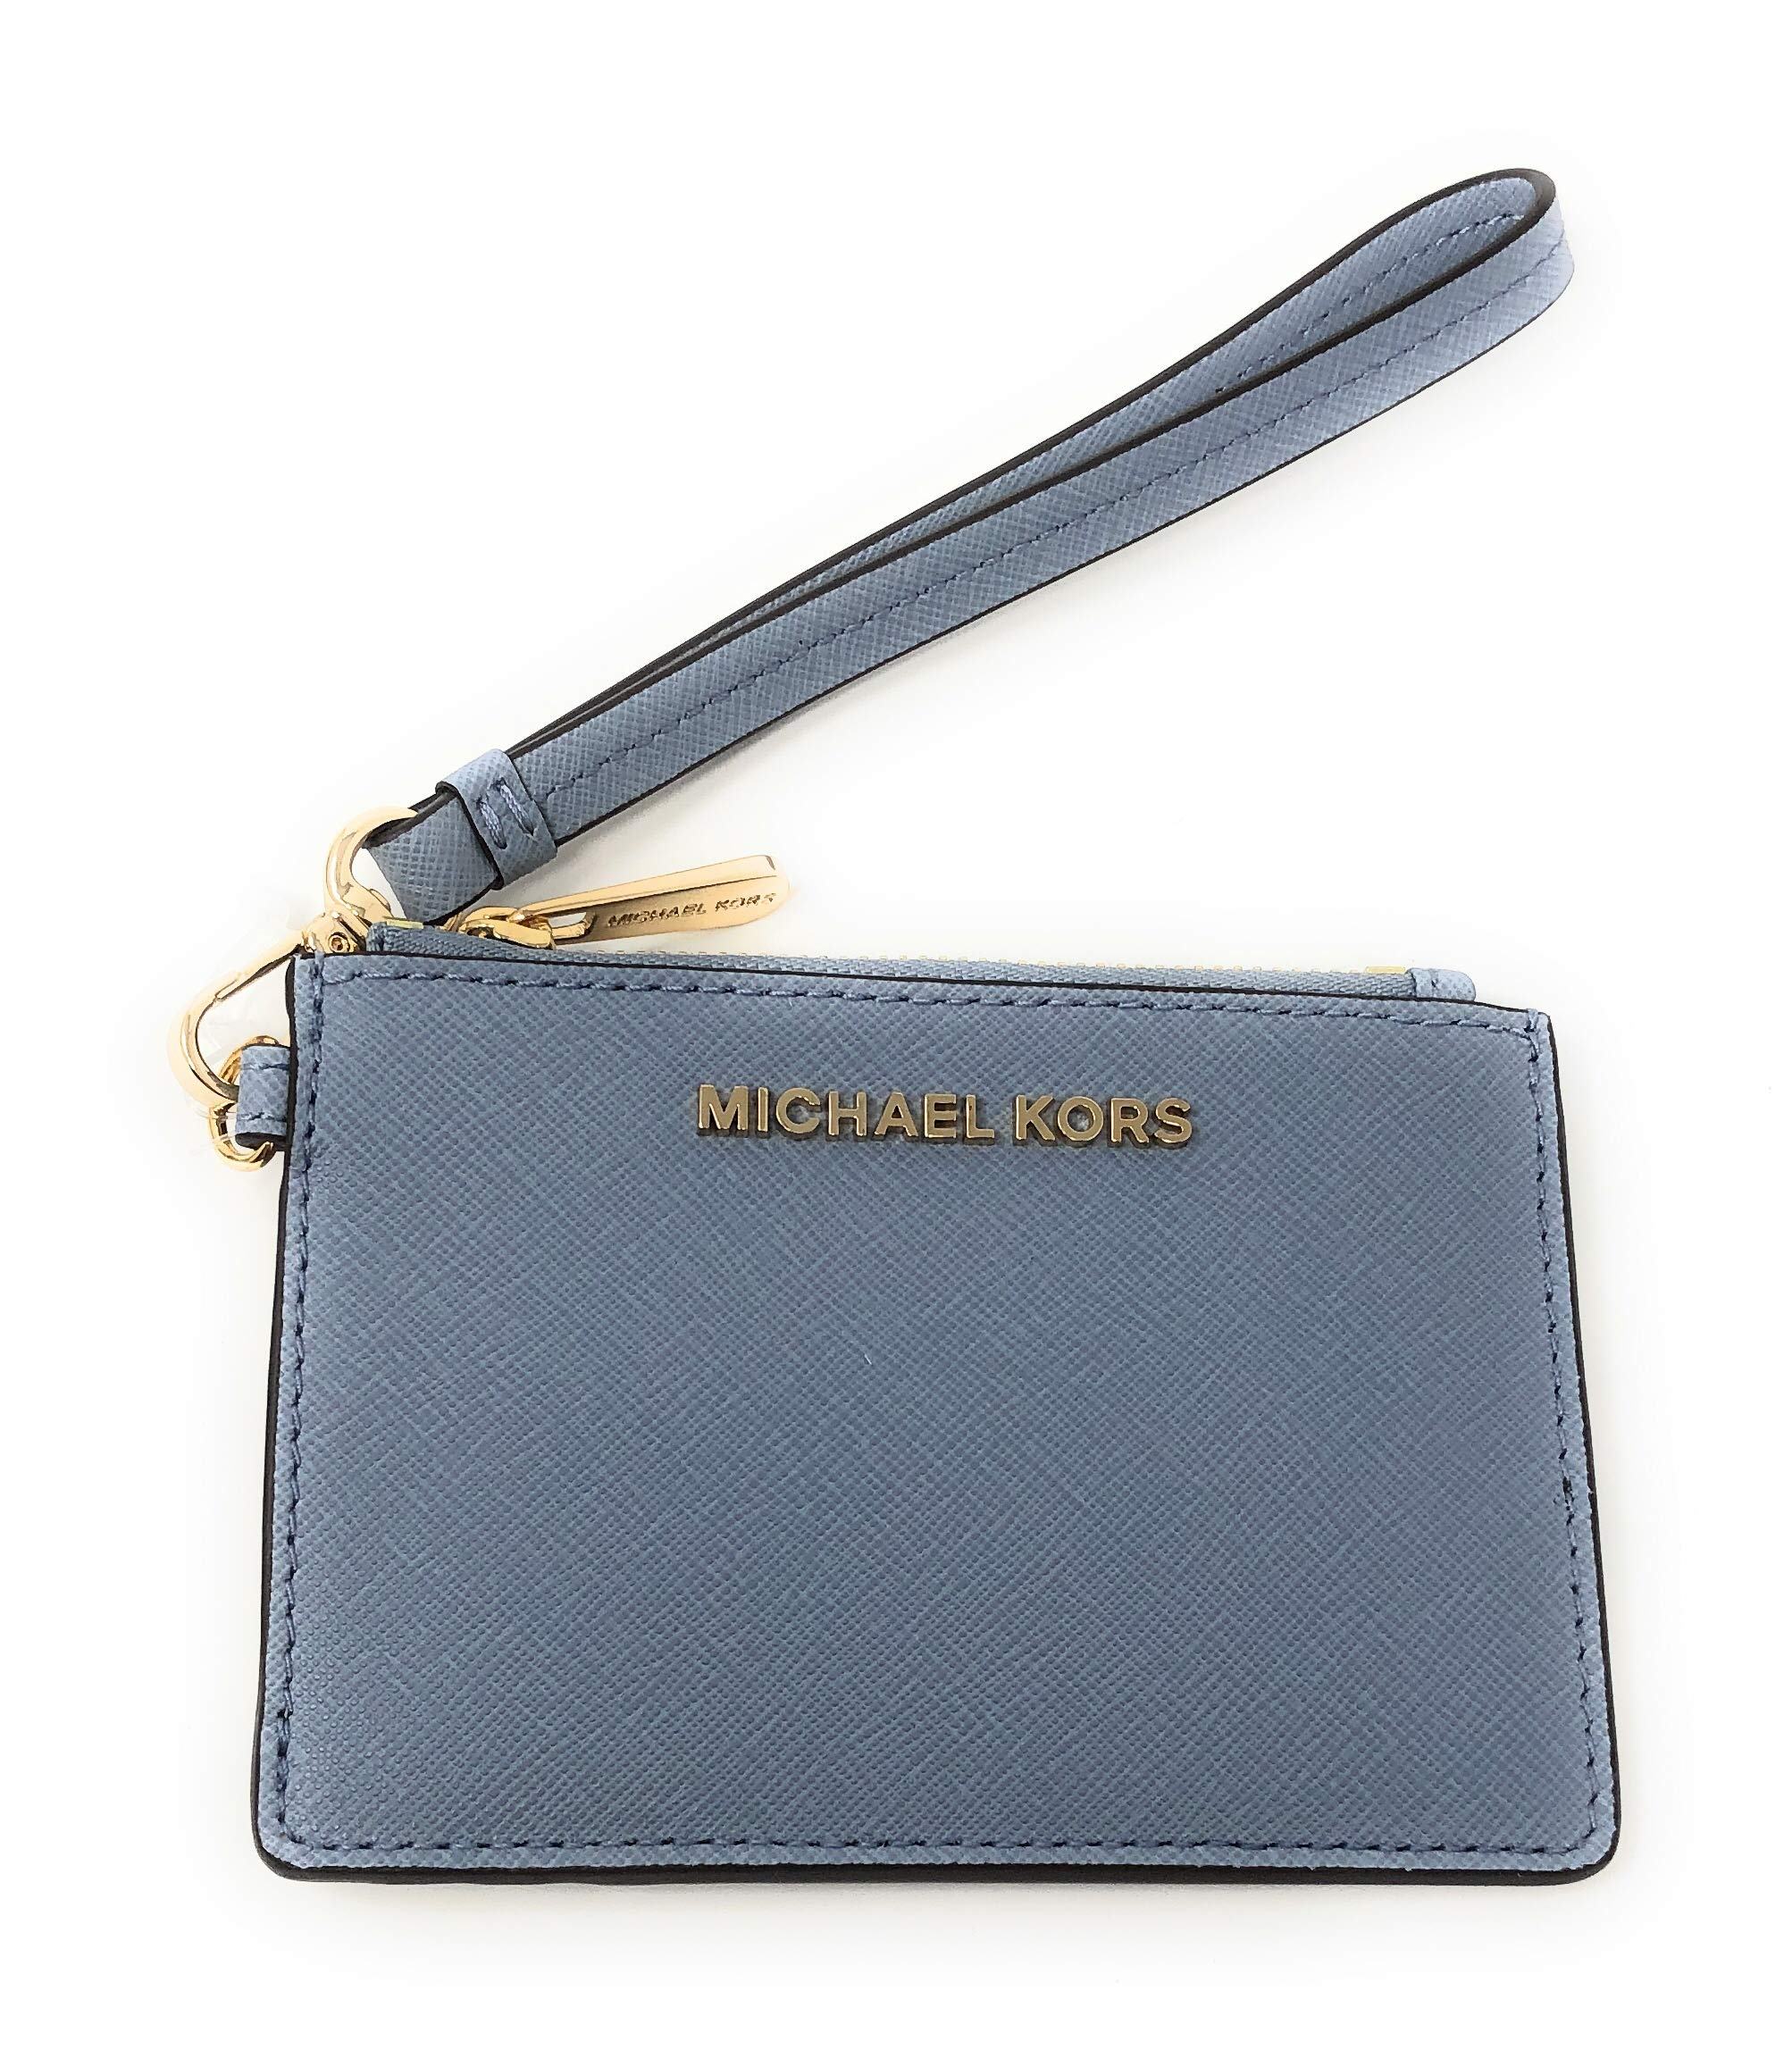 Michael Kors Jet Set Travel Top Zip Coin Pouch ID Card Case Wallet Wristlet in Pale Blue/Navy